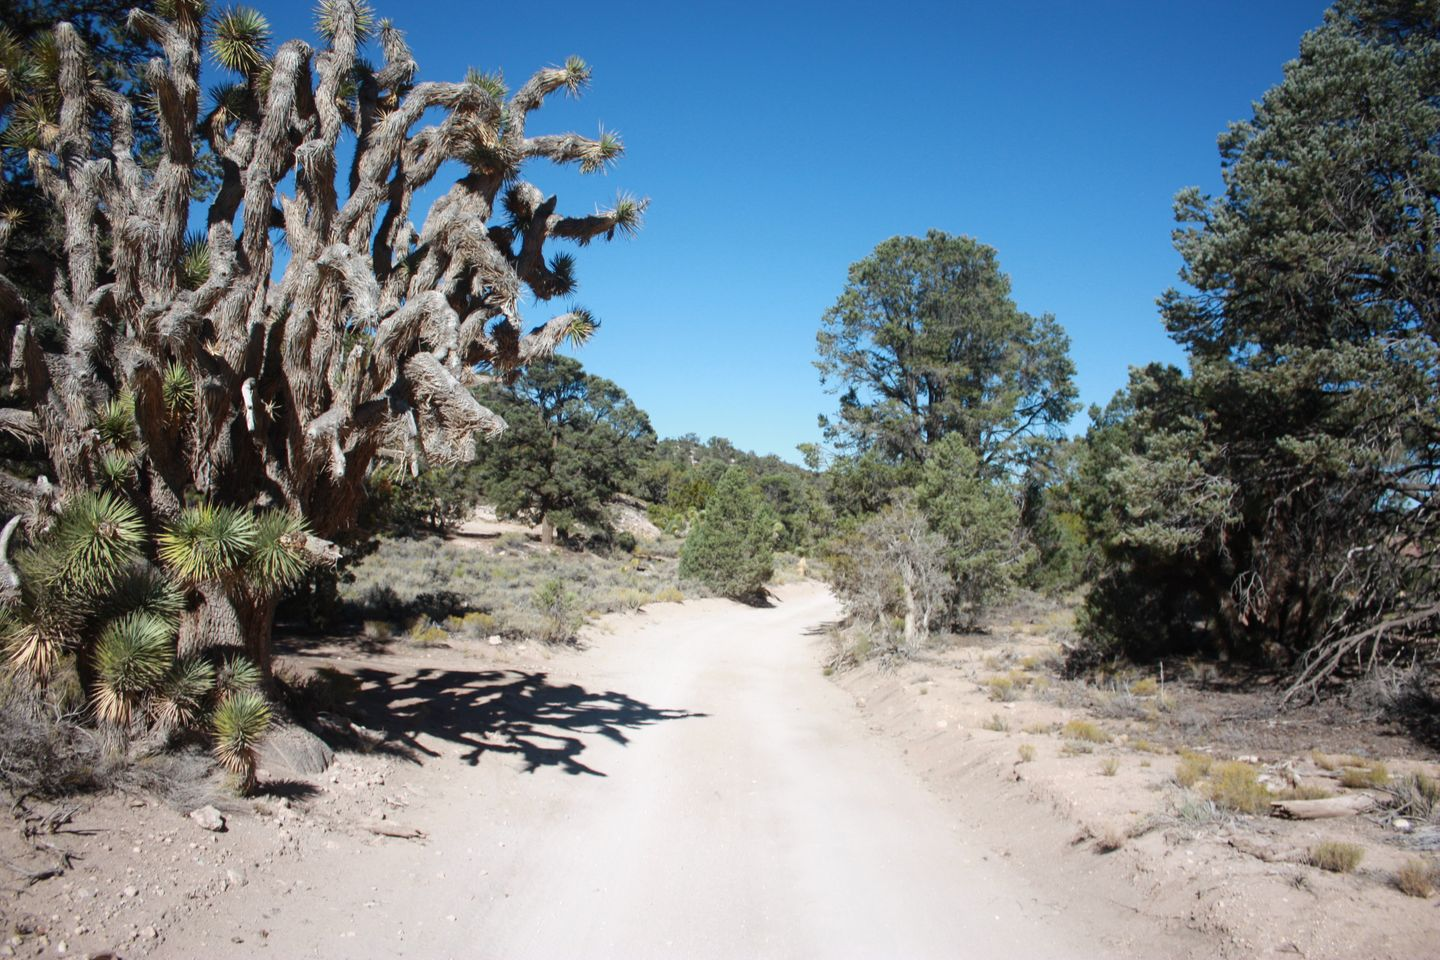 2N02 - Burns Canyon - Waypoint 6: Views From The Trail